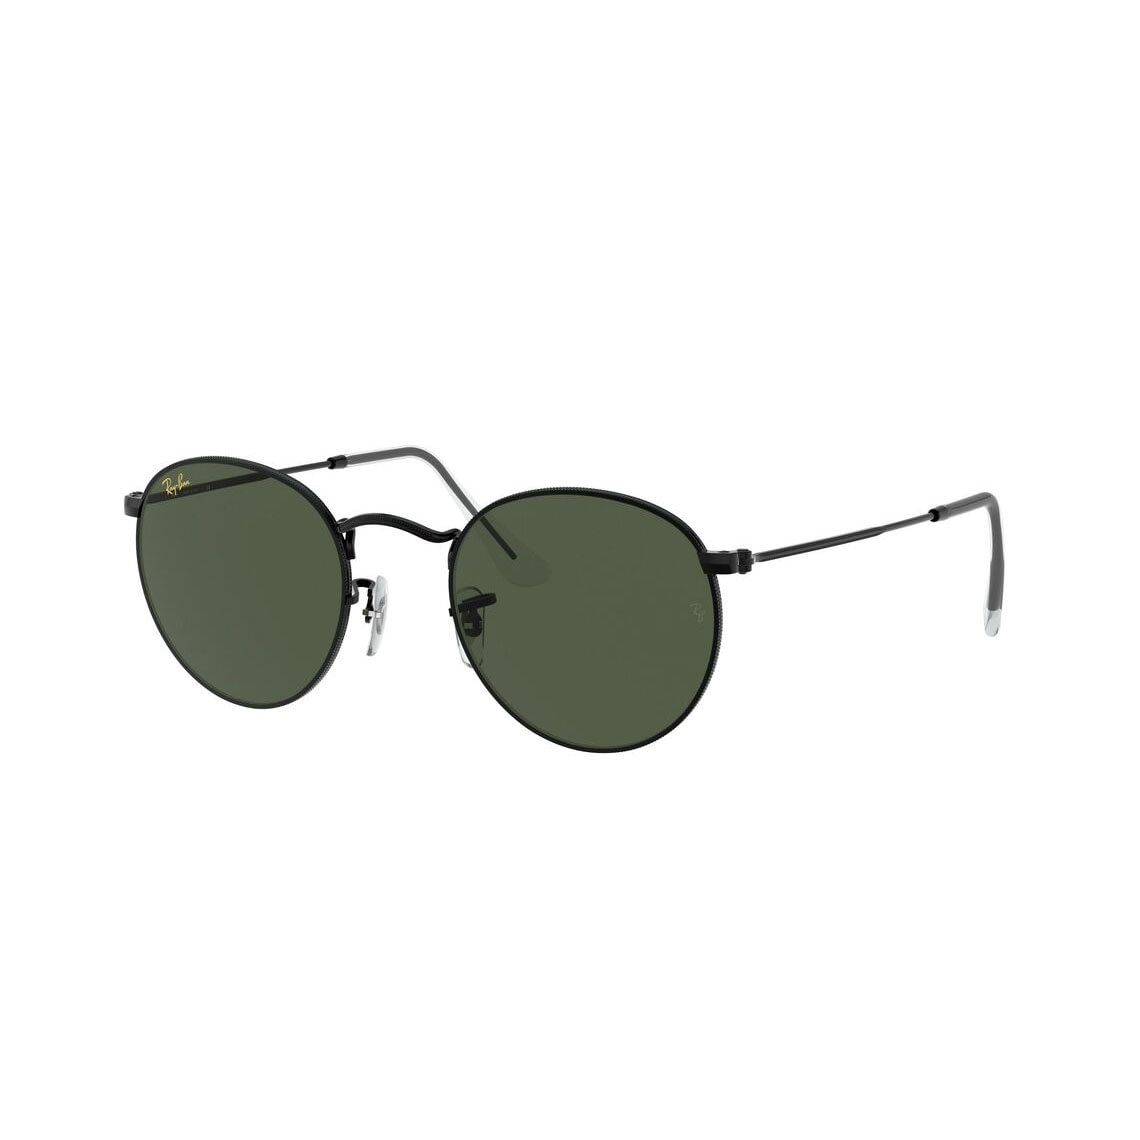 Ray-Ban Round Metal Legend Gold RB3447 919931 5021